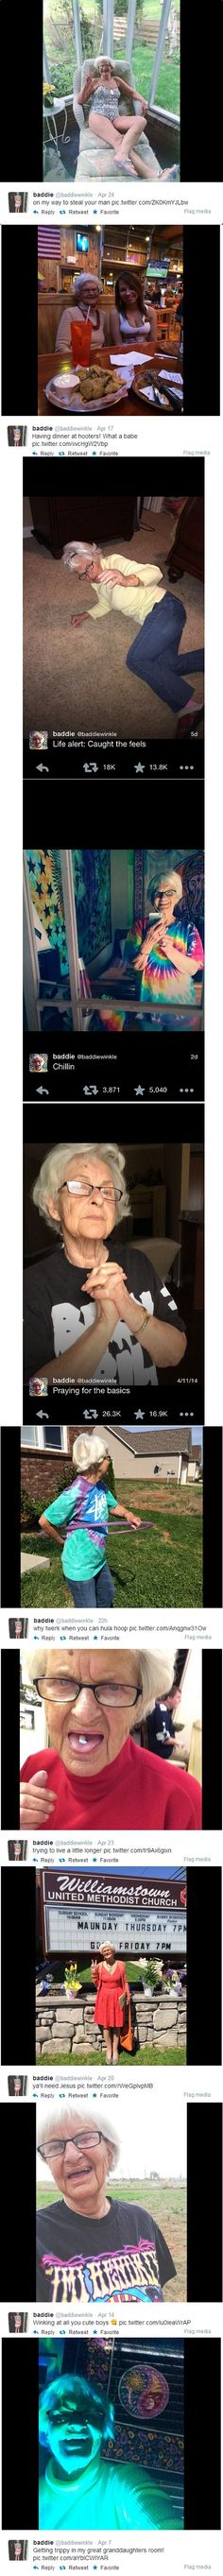 Let's be this grandma